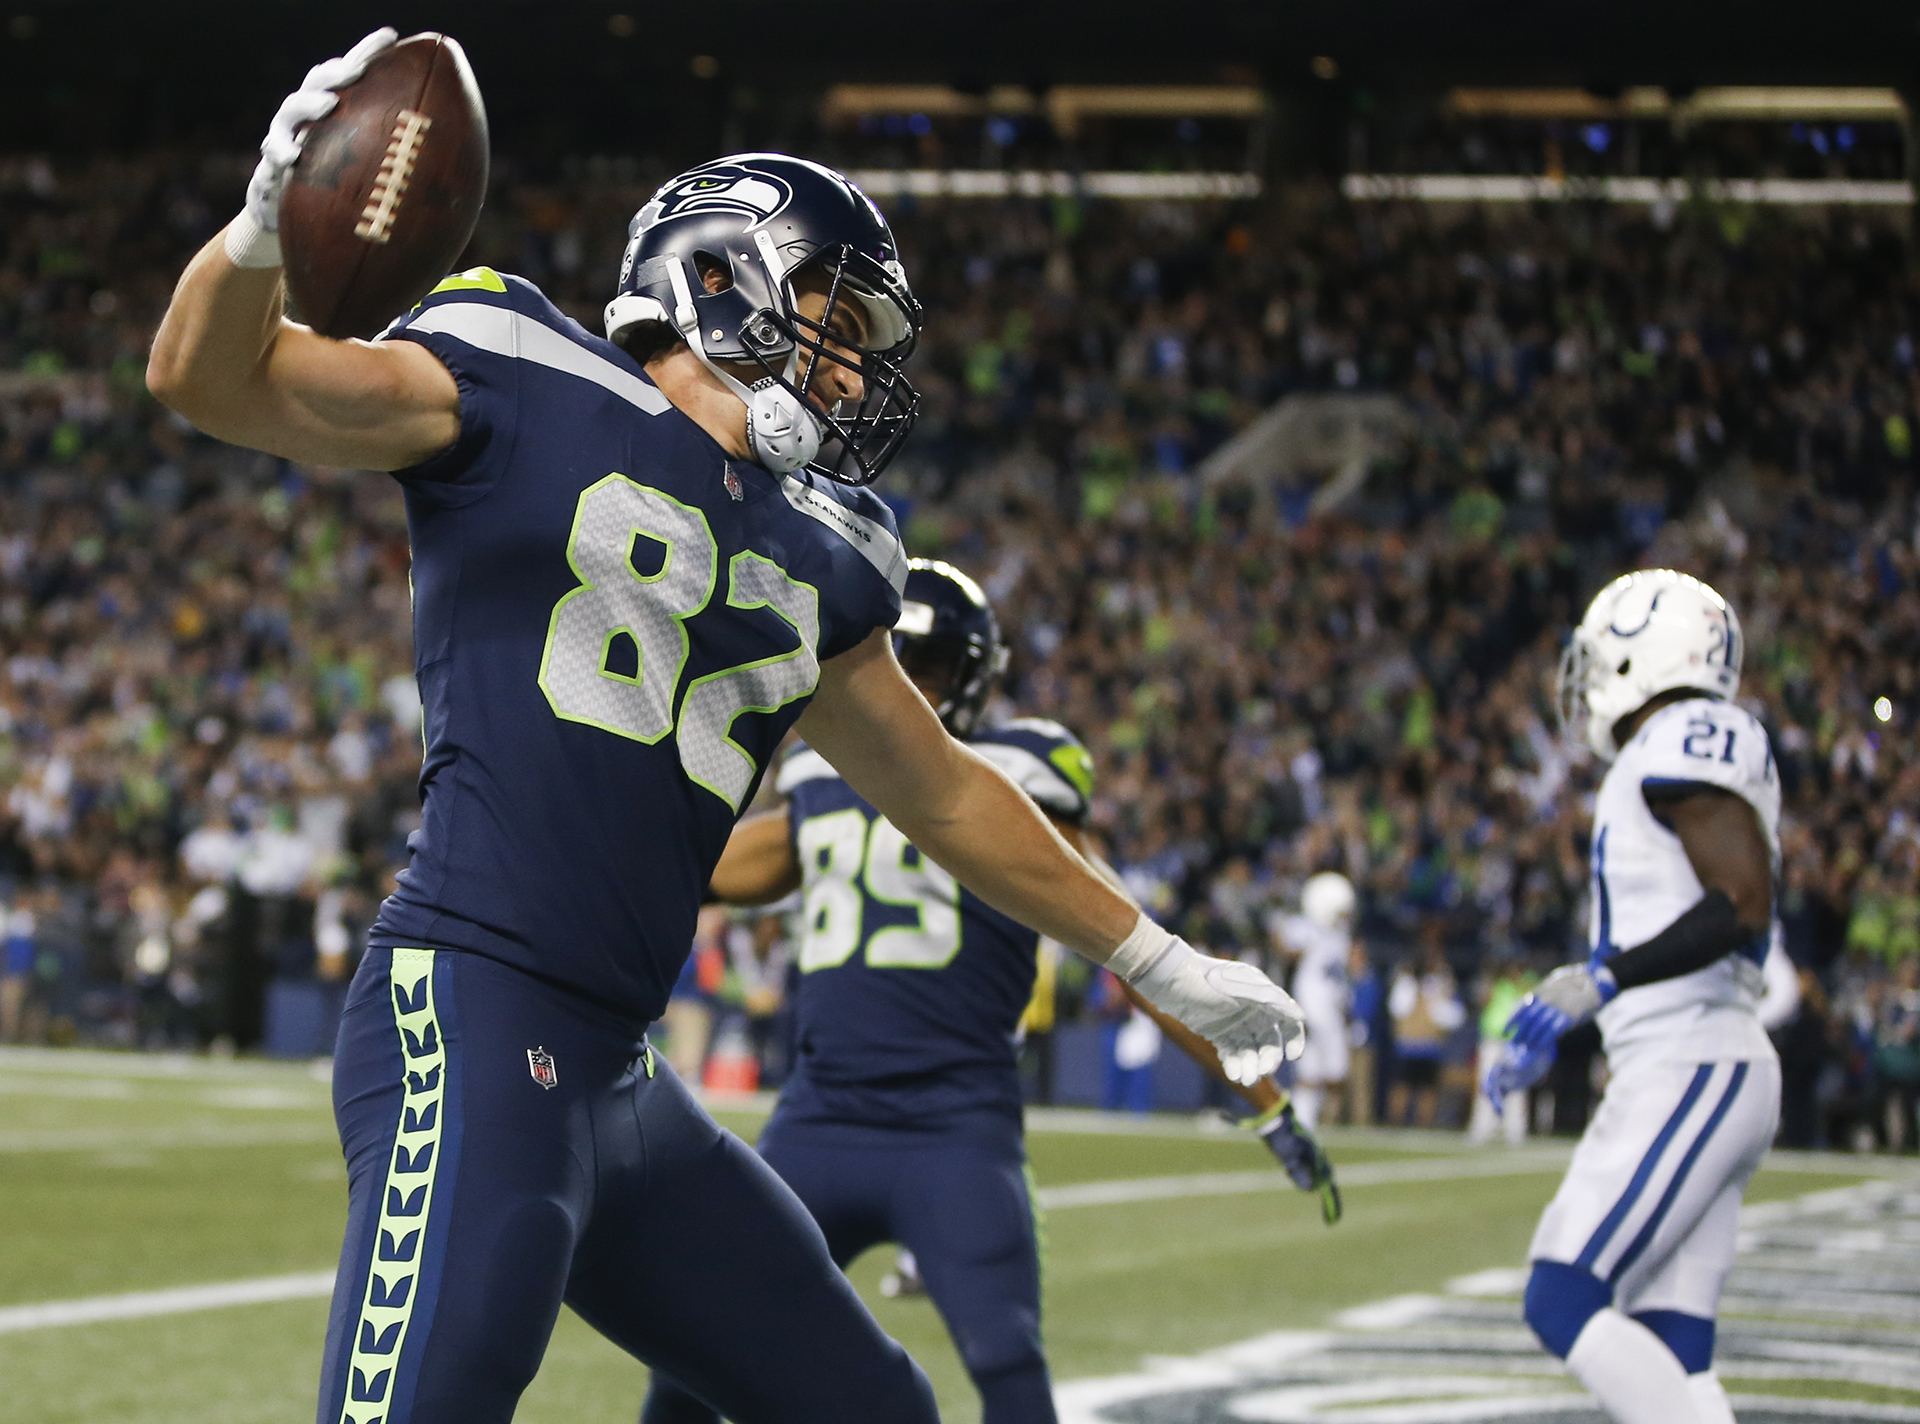 The Seahawks tried a clever trick play and it was intercepted